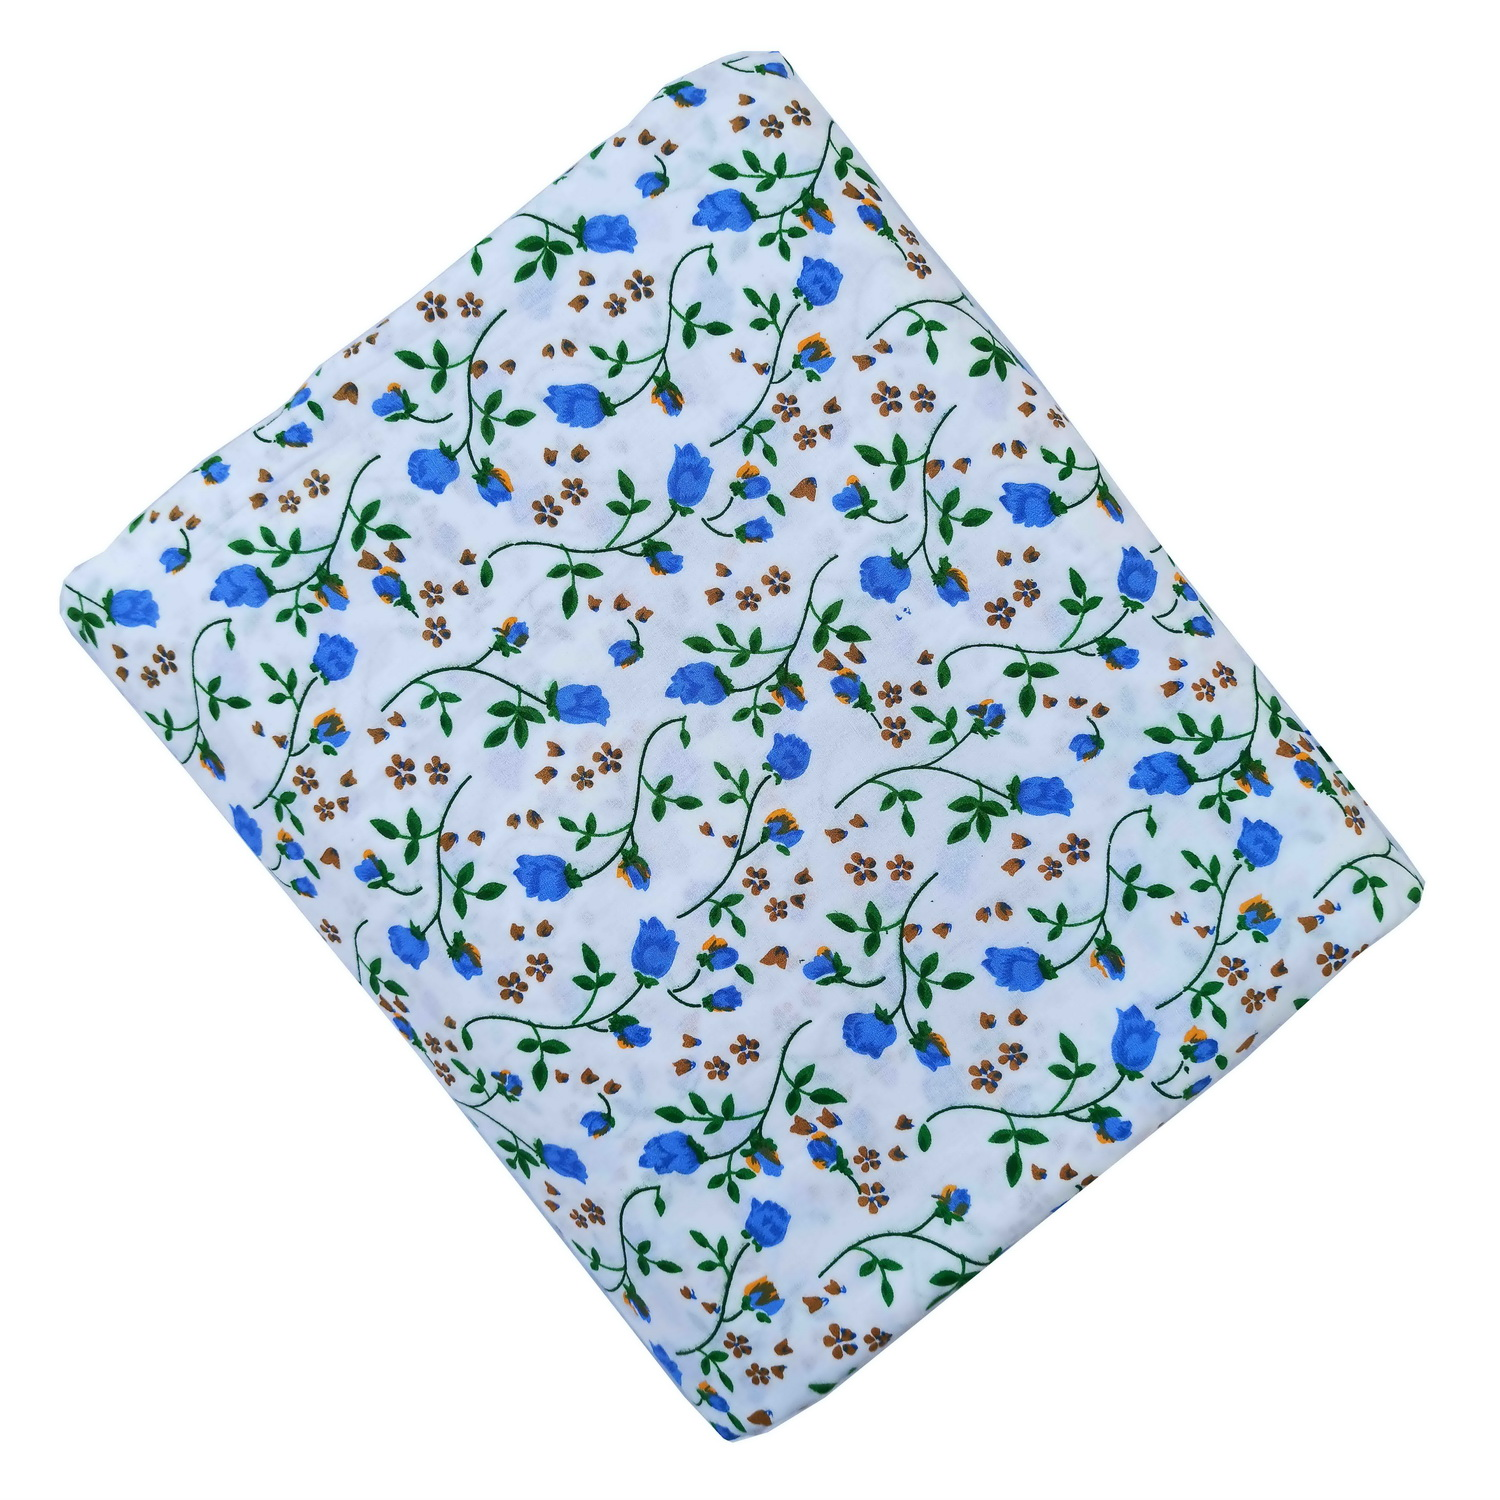 100% Pure Cotton Printed Cloth Skin Friendly Fabric Dress Material PC507 1